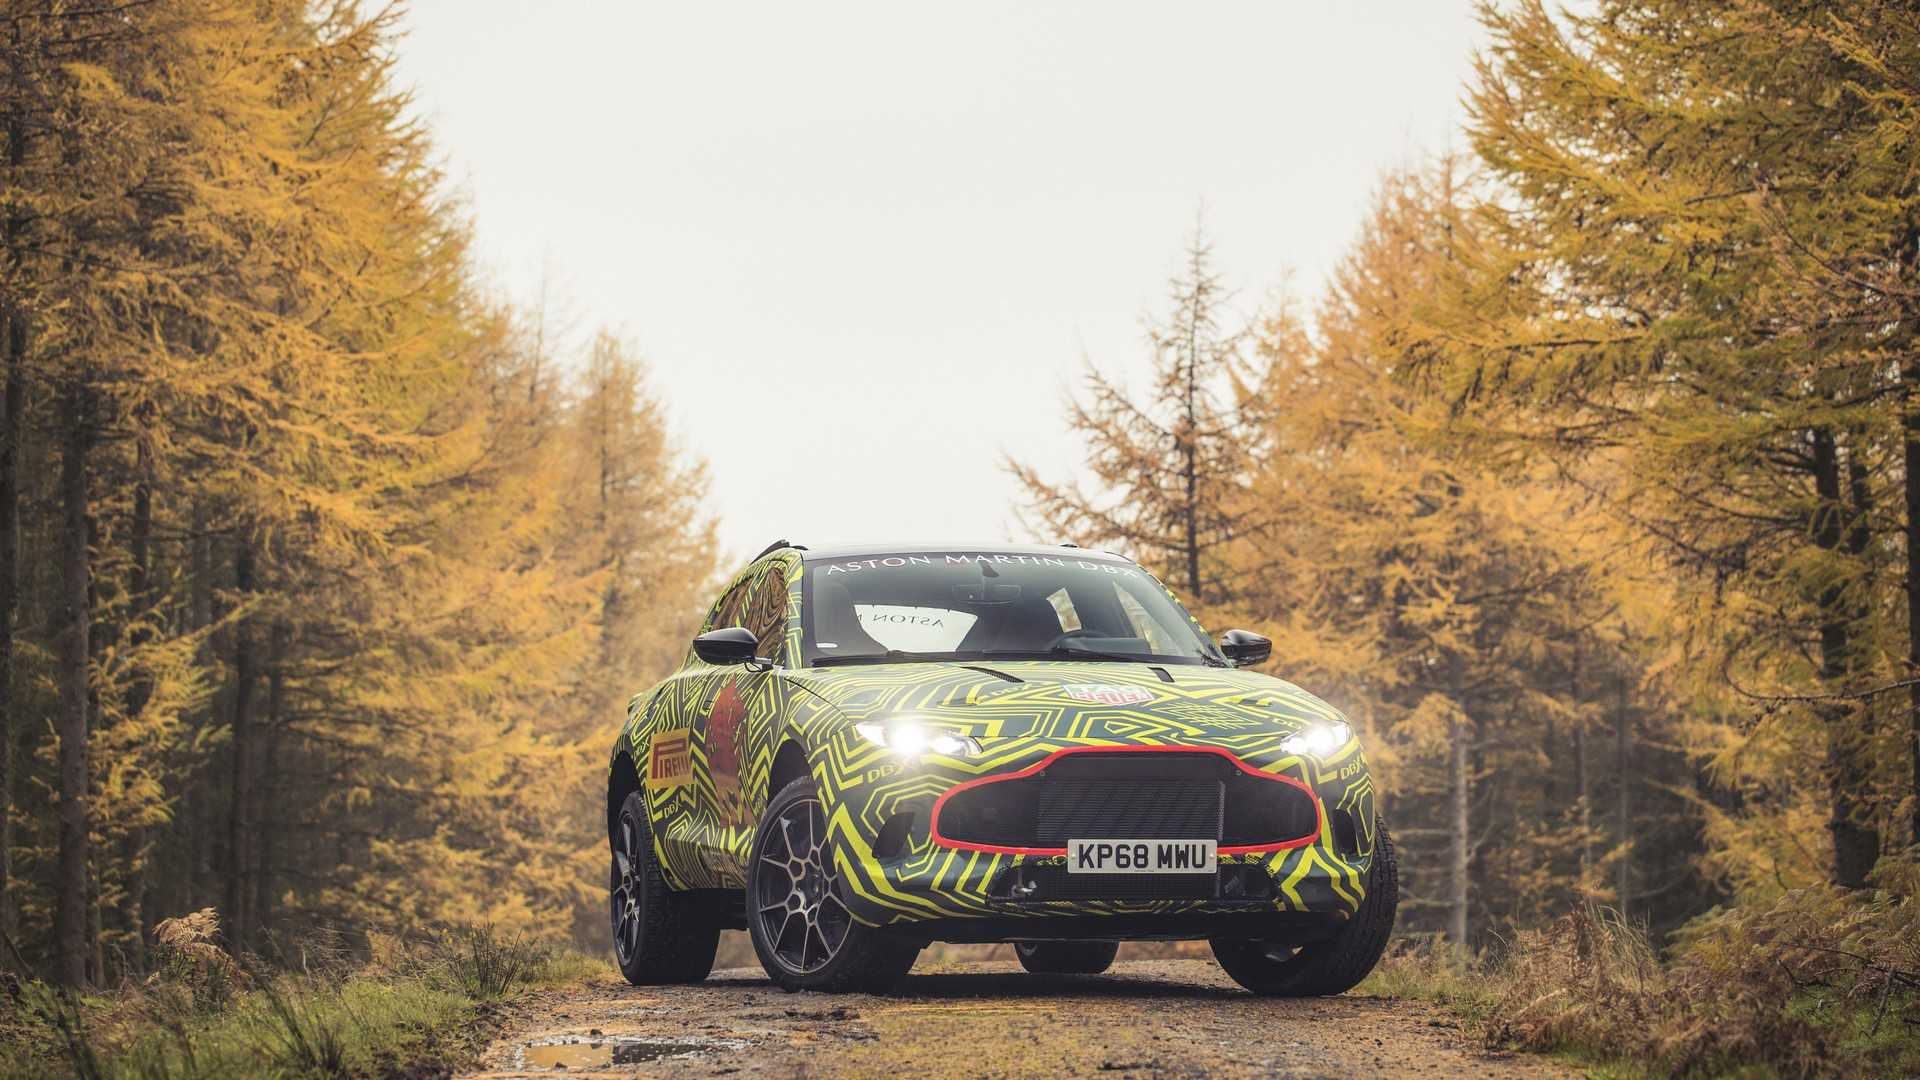 Aston Martin SUV starts road test - Could be a Lamborghini Urus rival